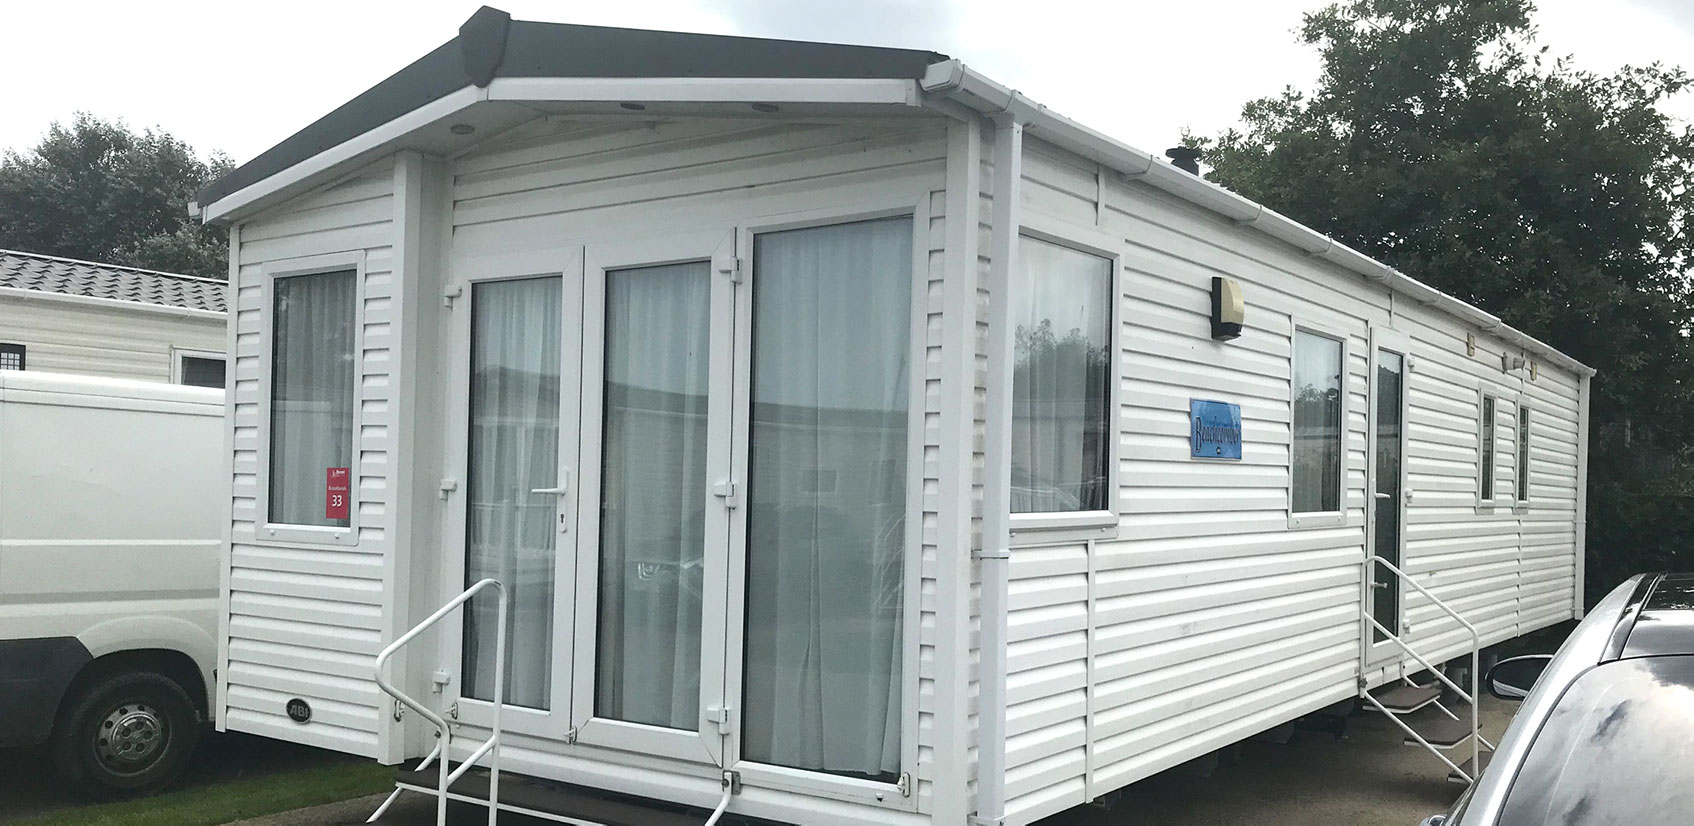 We buy and sell caravans, please get in touch to see what we can offer you